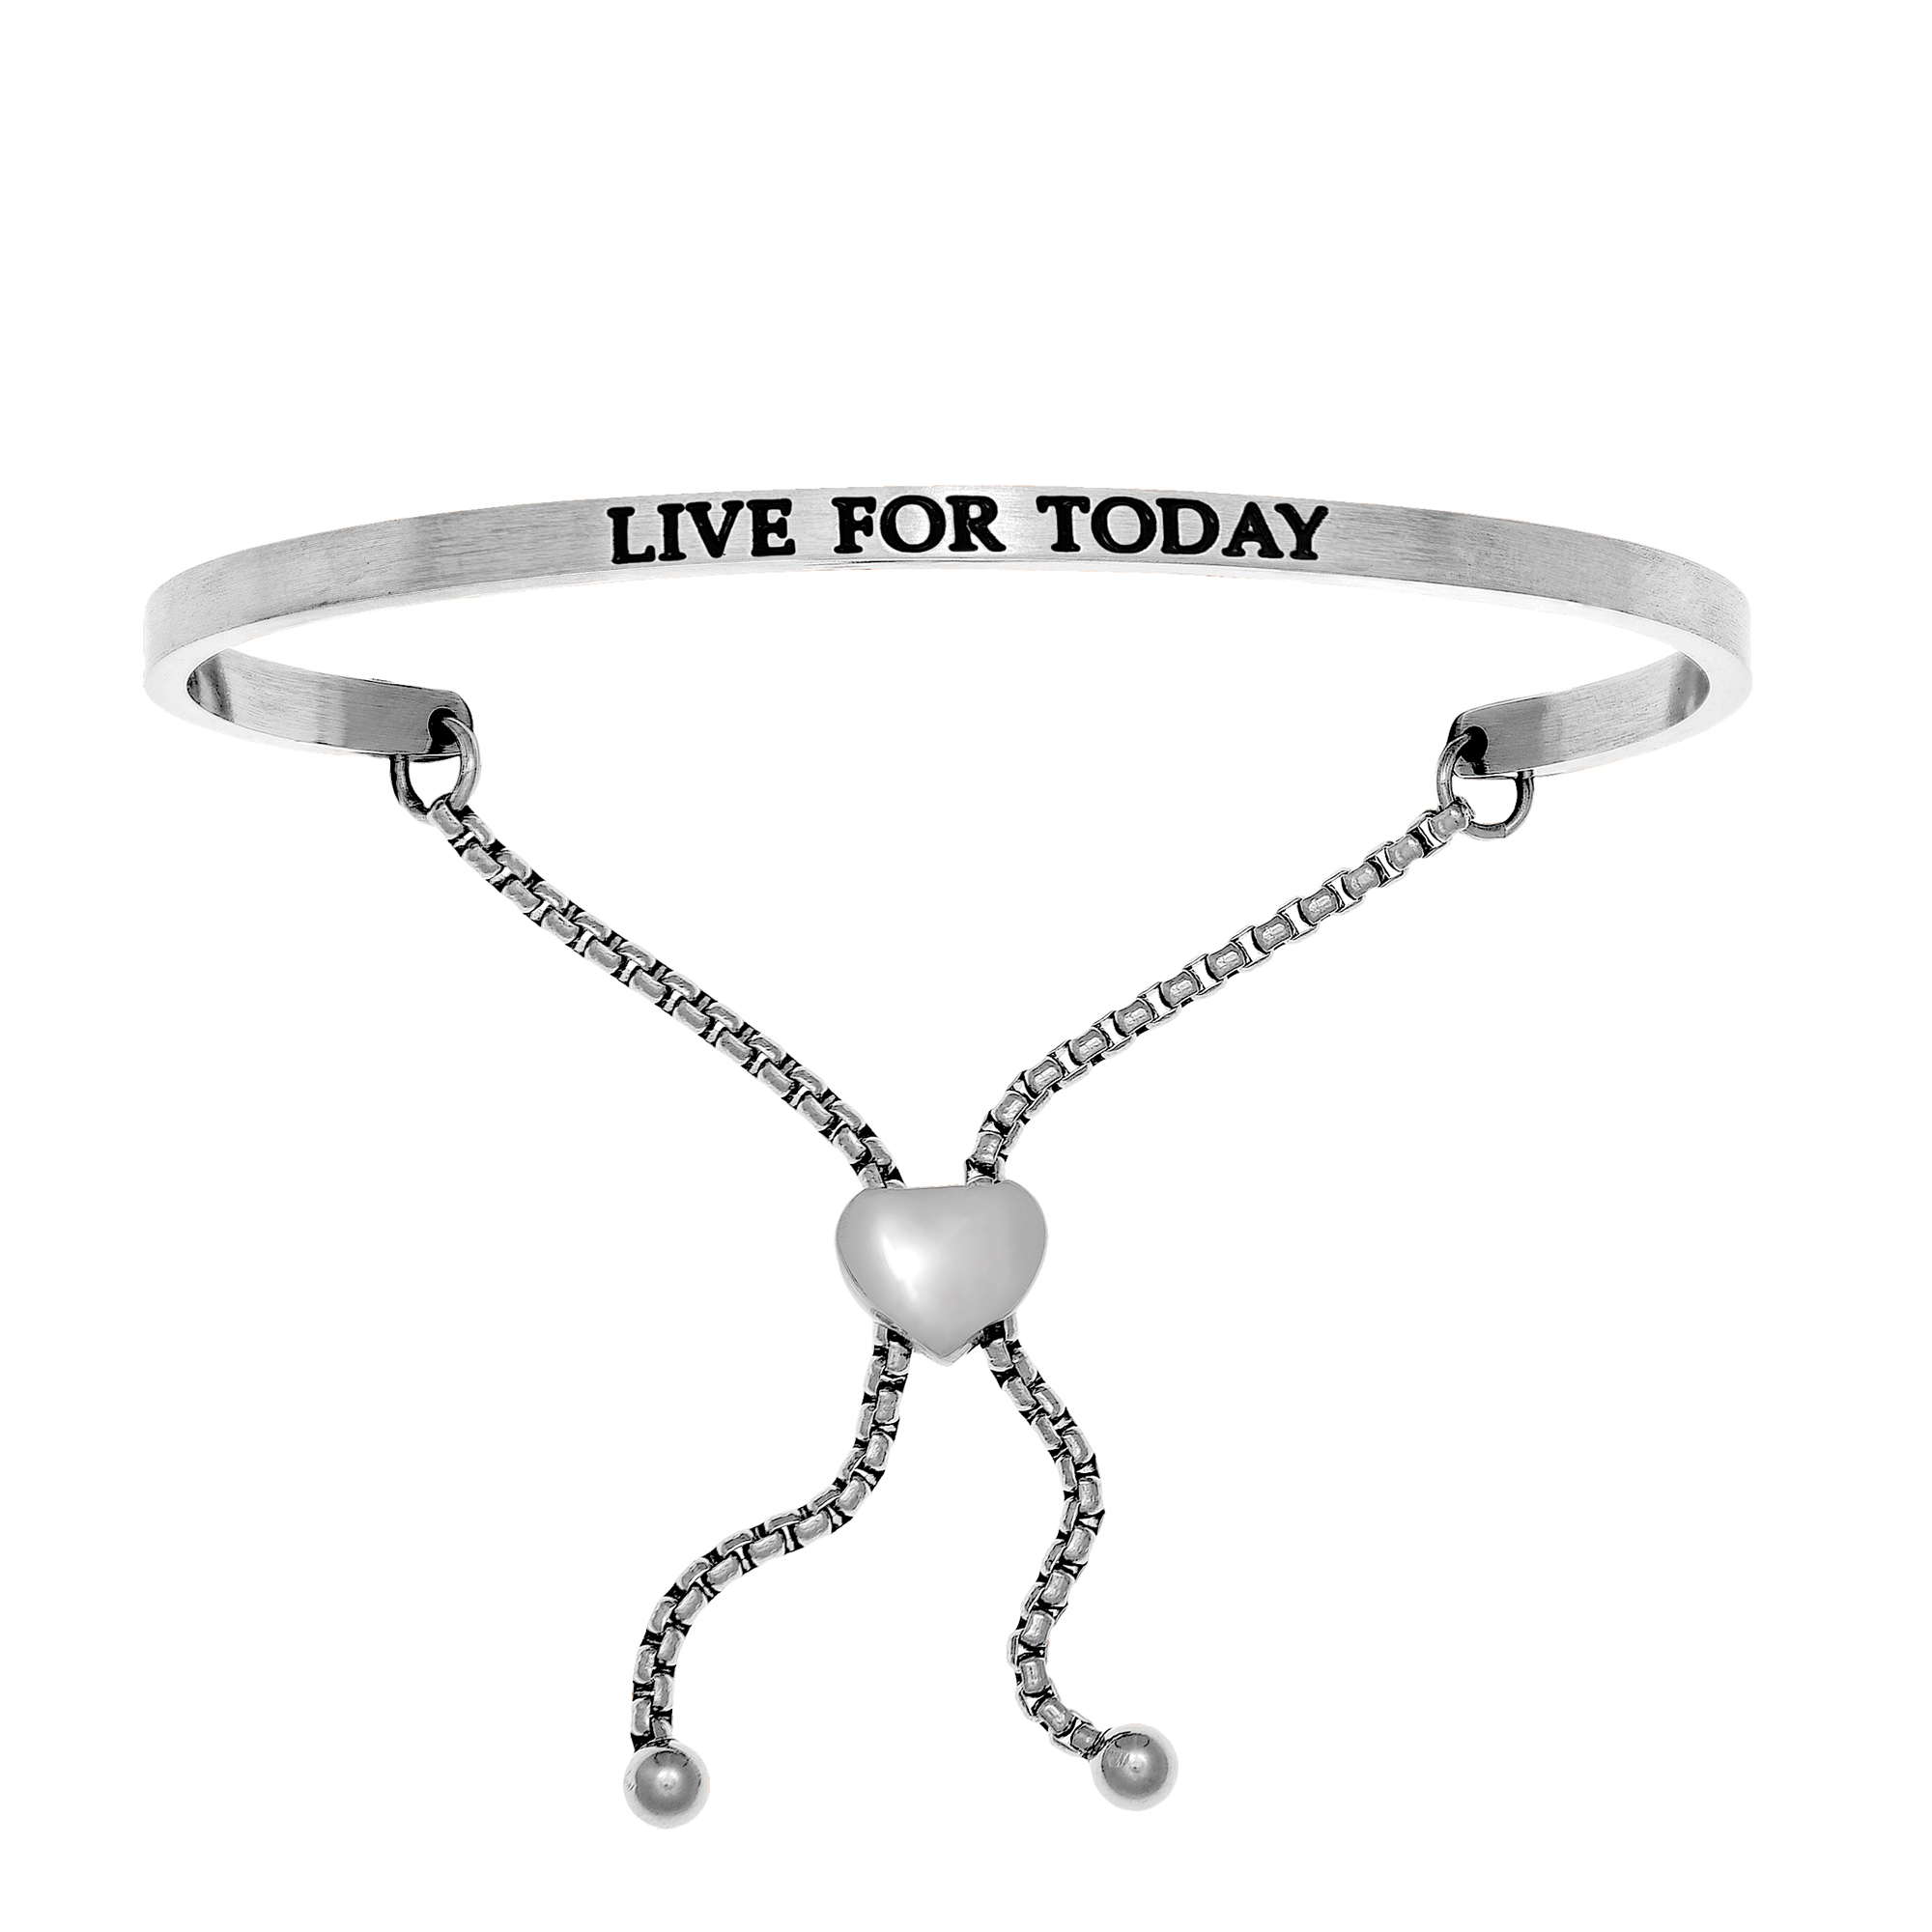 Intuitions Stainless Steel LIVE FOR TODAY Diamond Accent Adjustable Bracelet Each of these bracelets carries a personal message of inspiration, spirituality or just plain fun. Meant to be worn alone or stacked together for a smart, contemporary look, they're a great self-purchase or as a gift for family or friends. Intuitions are made of stainless steel and come in two styles standard cuff or friendship and fit practically any wrist. Intuitions Jewelry makes the difference in your daily life by designing and creating bracelets and bangles with motivational quotes to inspire you and your loved ones. Giving back $.25 of each bracelet to BABY2BABY